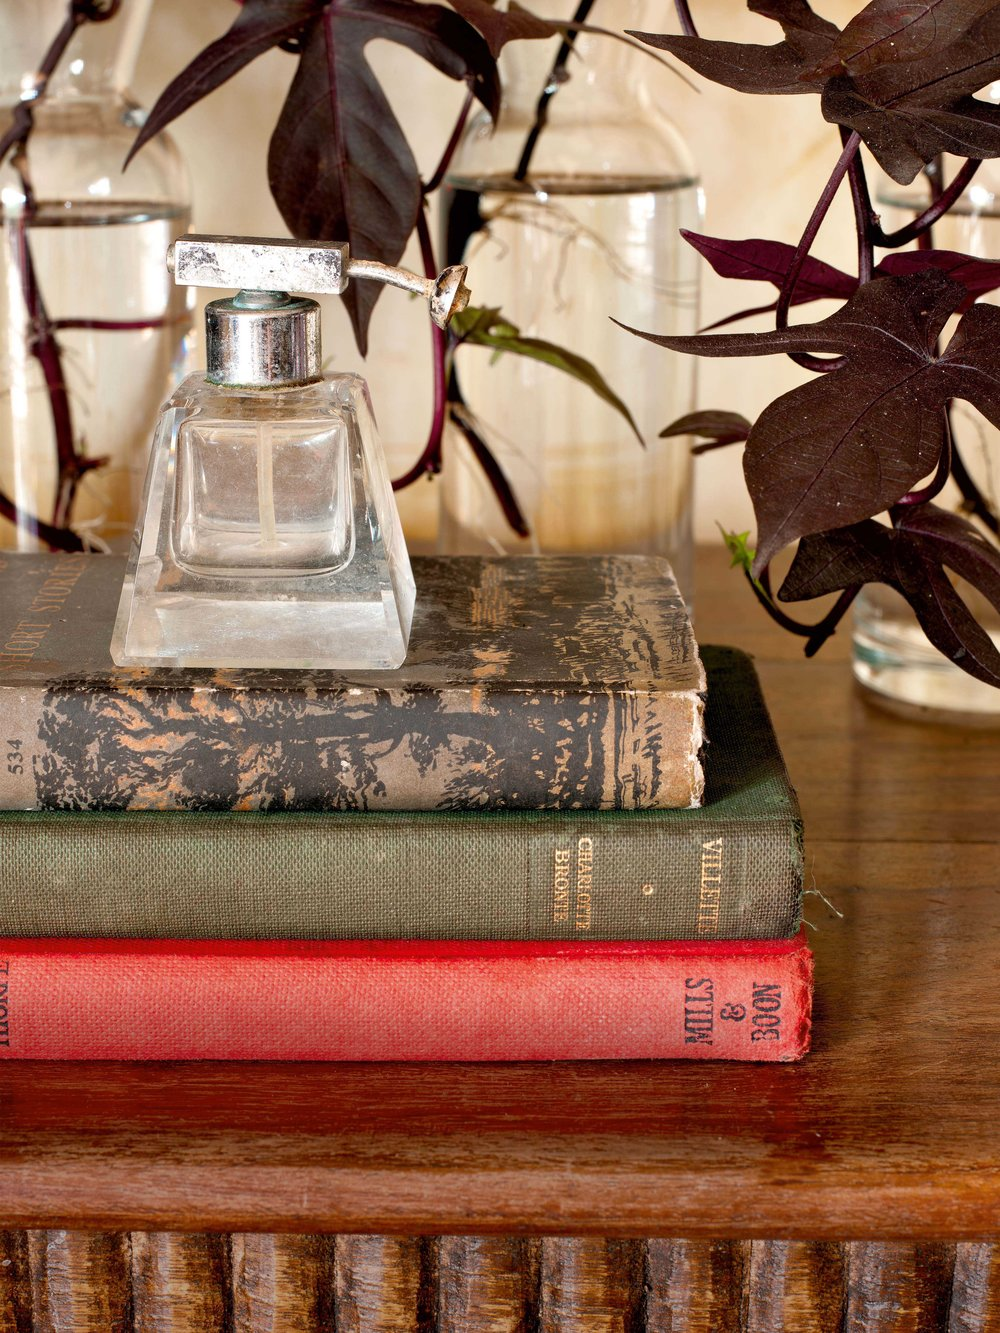 The house is dotted with old books that are a part of his family collection, perfume bottles, plants and creepers.